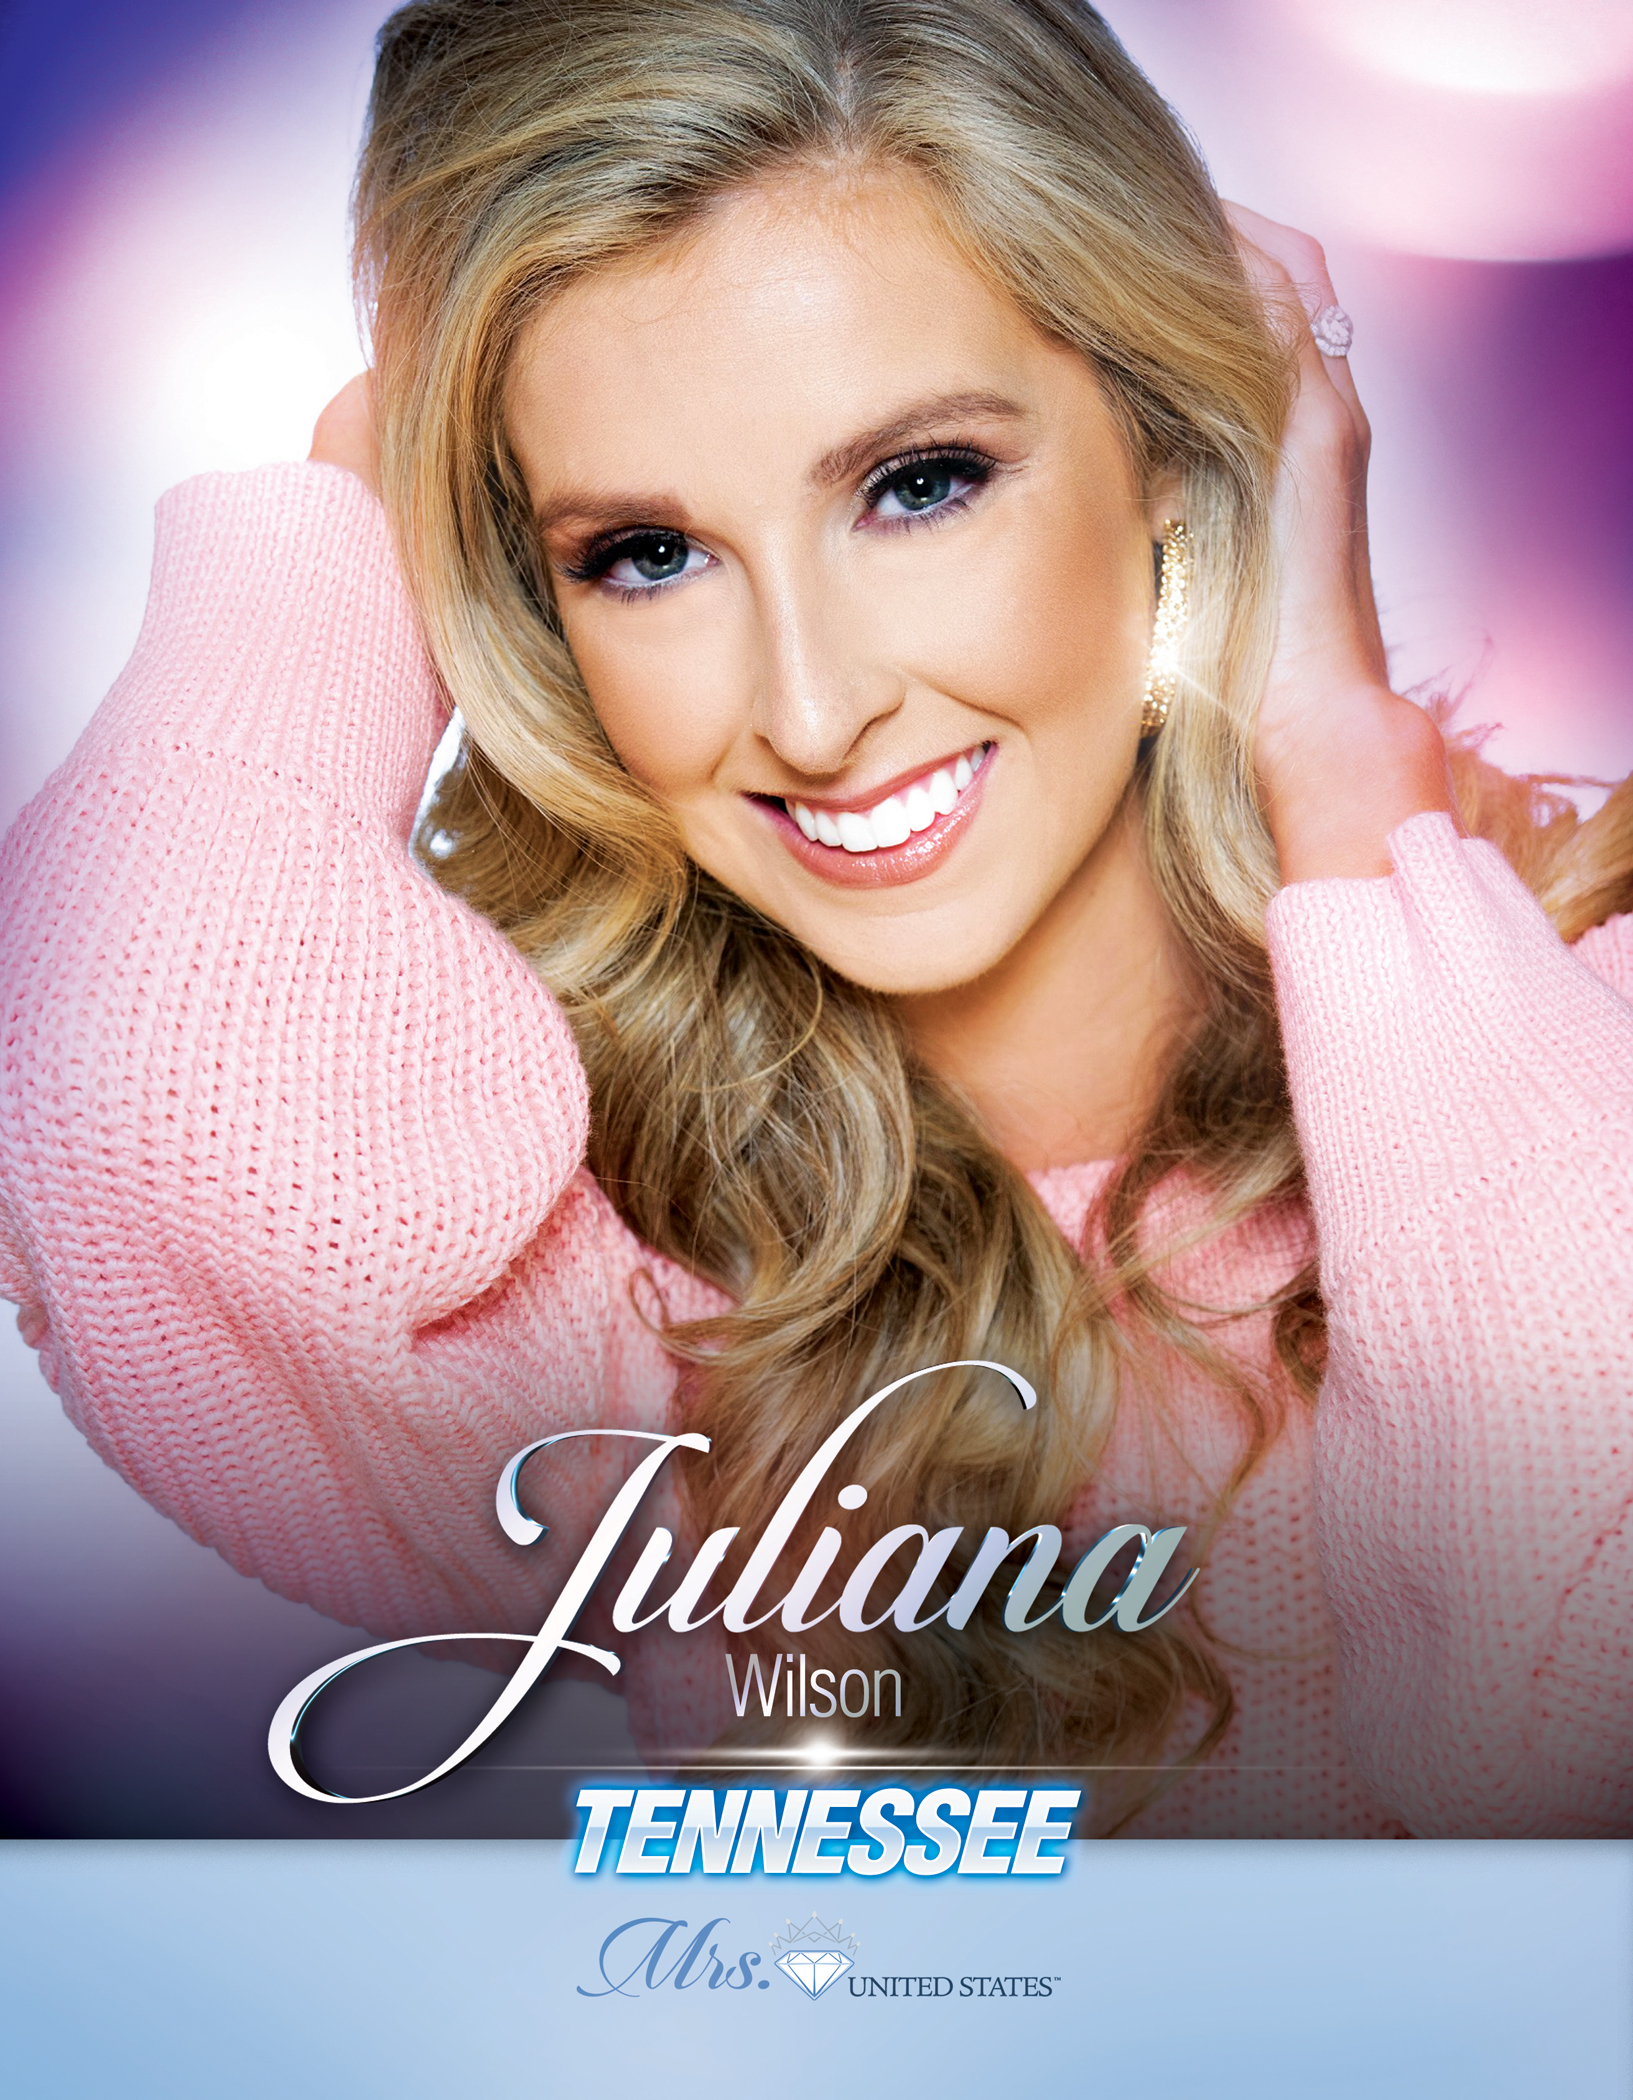 Juliana Wilson Mrs. Tennessee United States - 2019